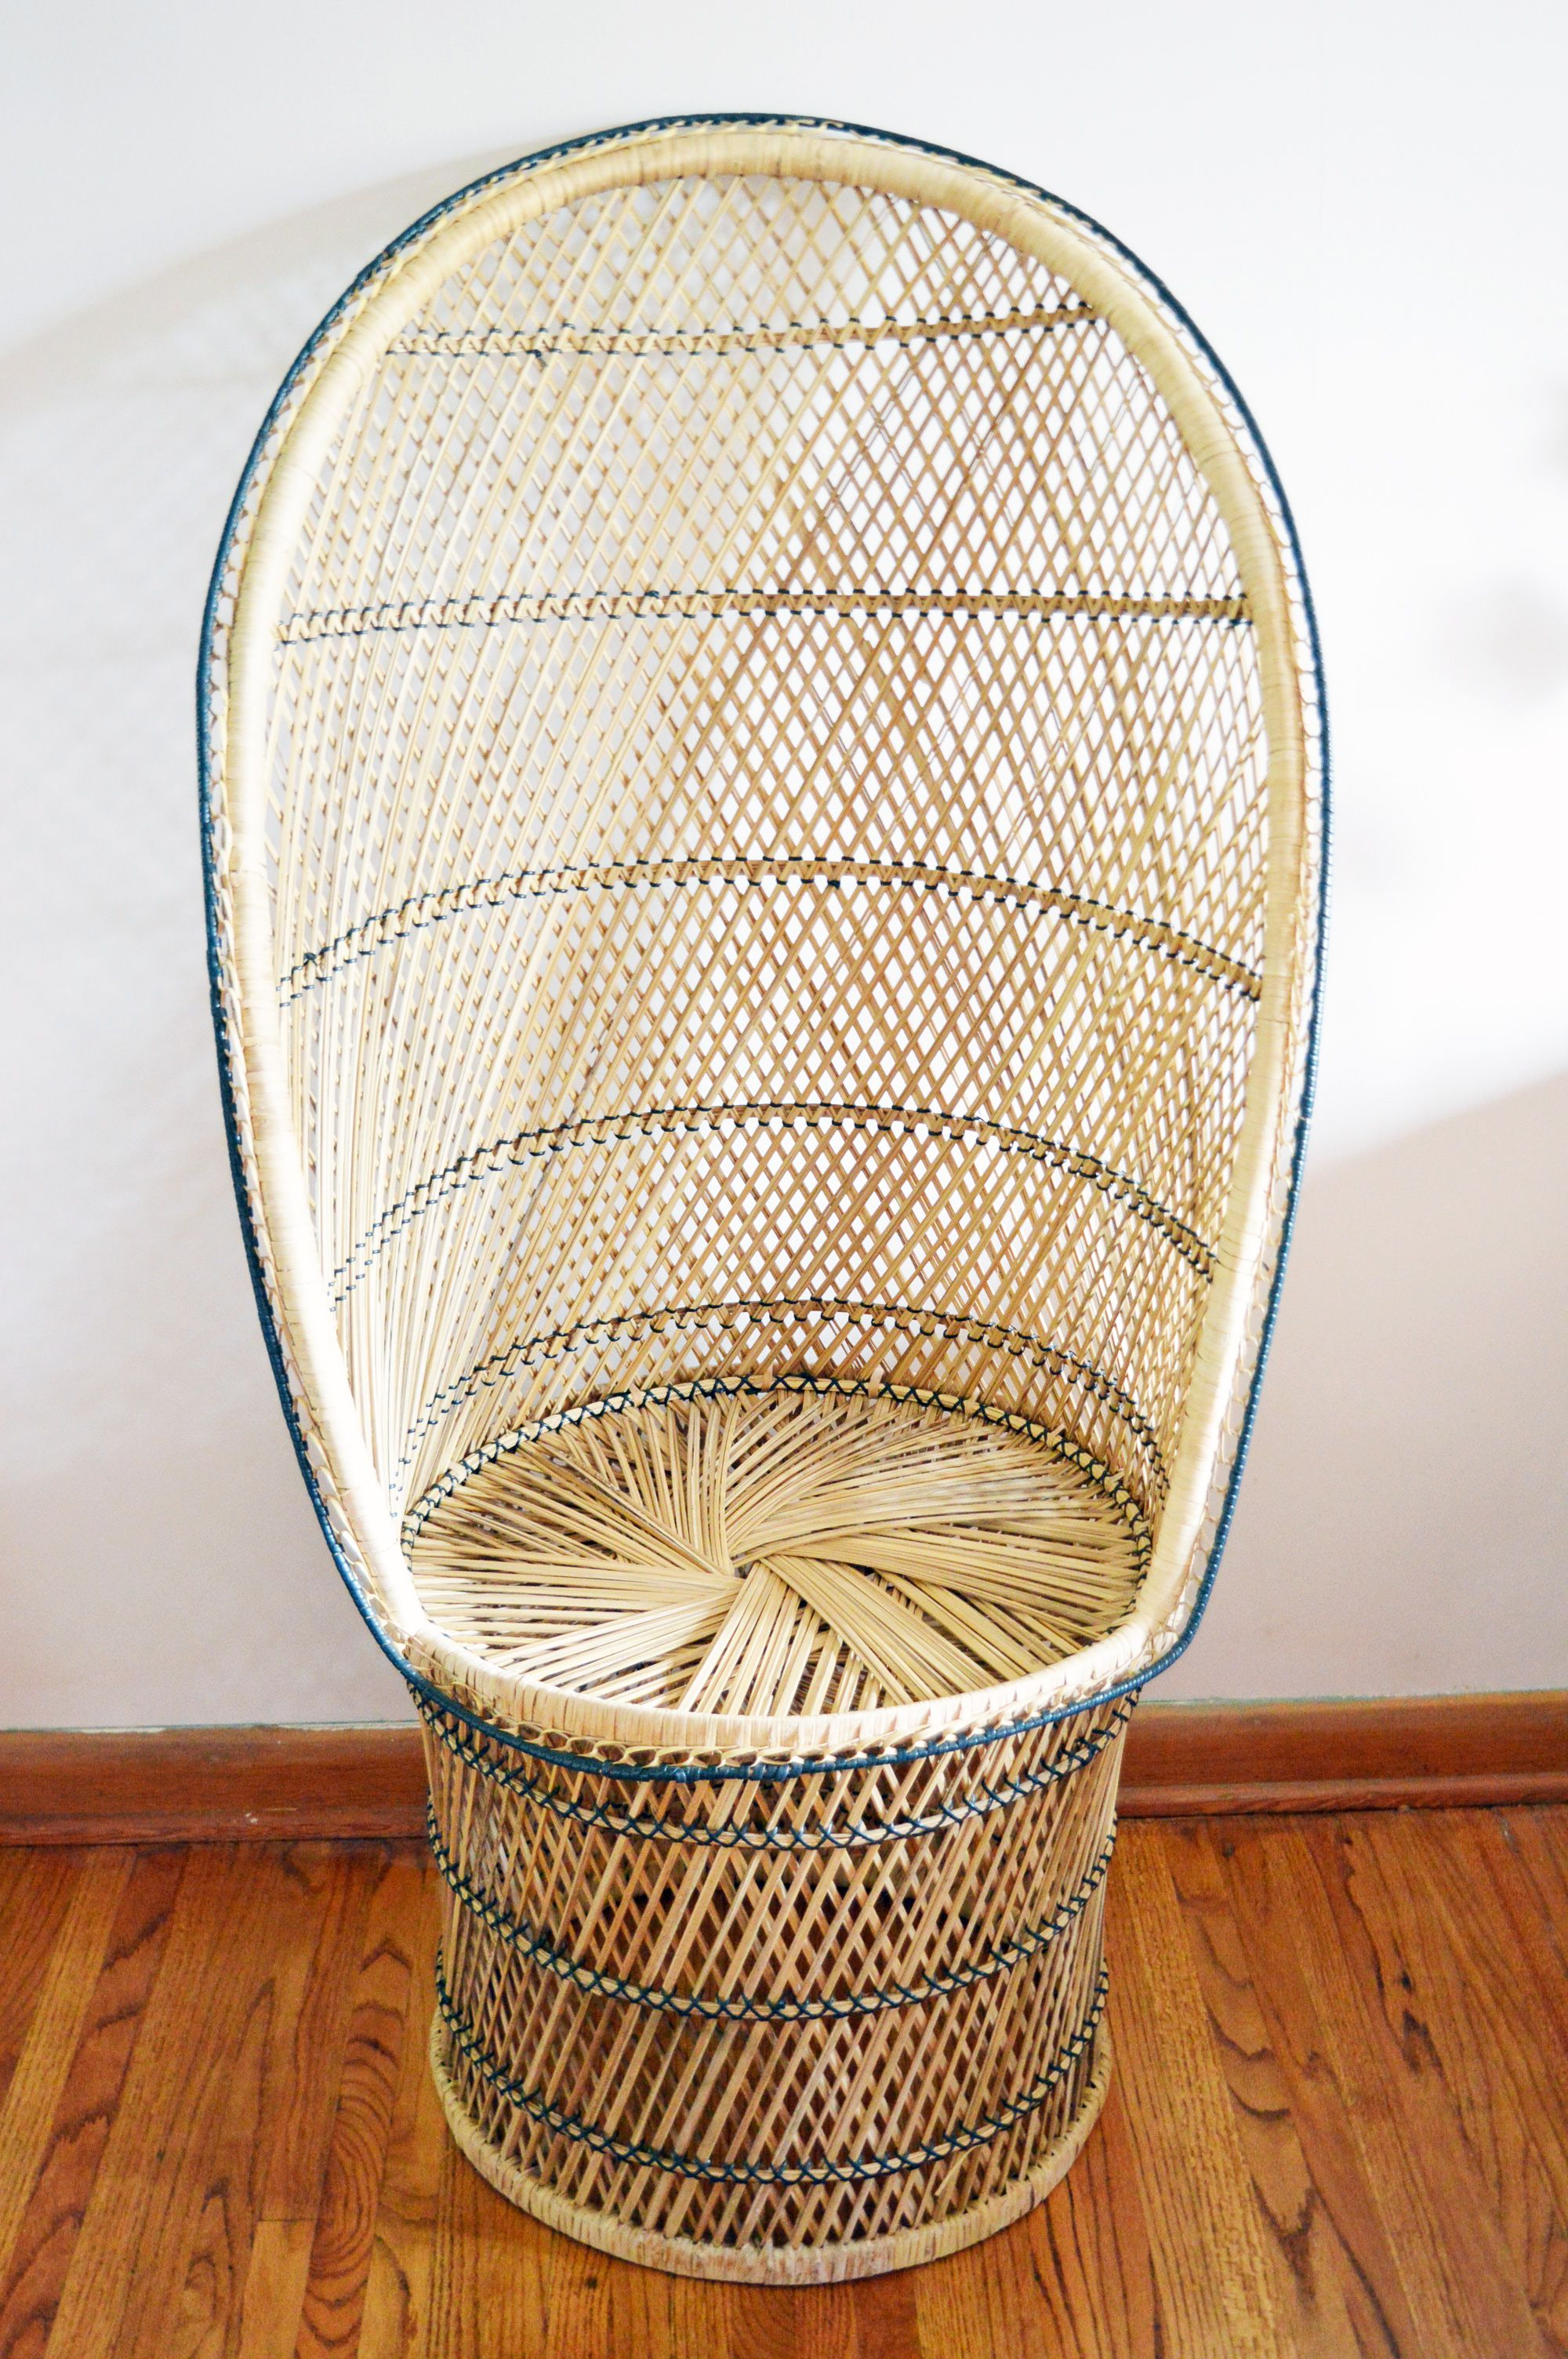 Vintage Rattan Egg Shaped Peacock Chair for Sale by Prairie Bazaar